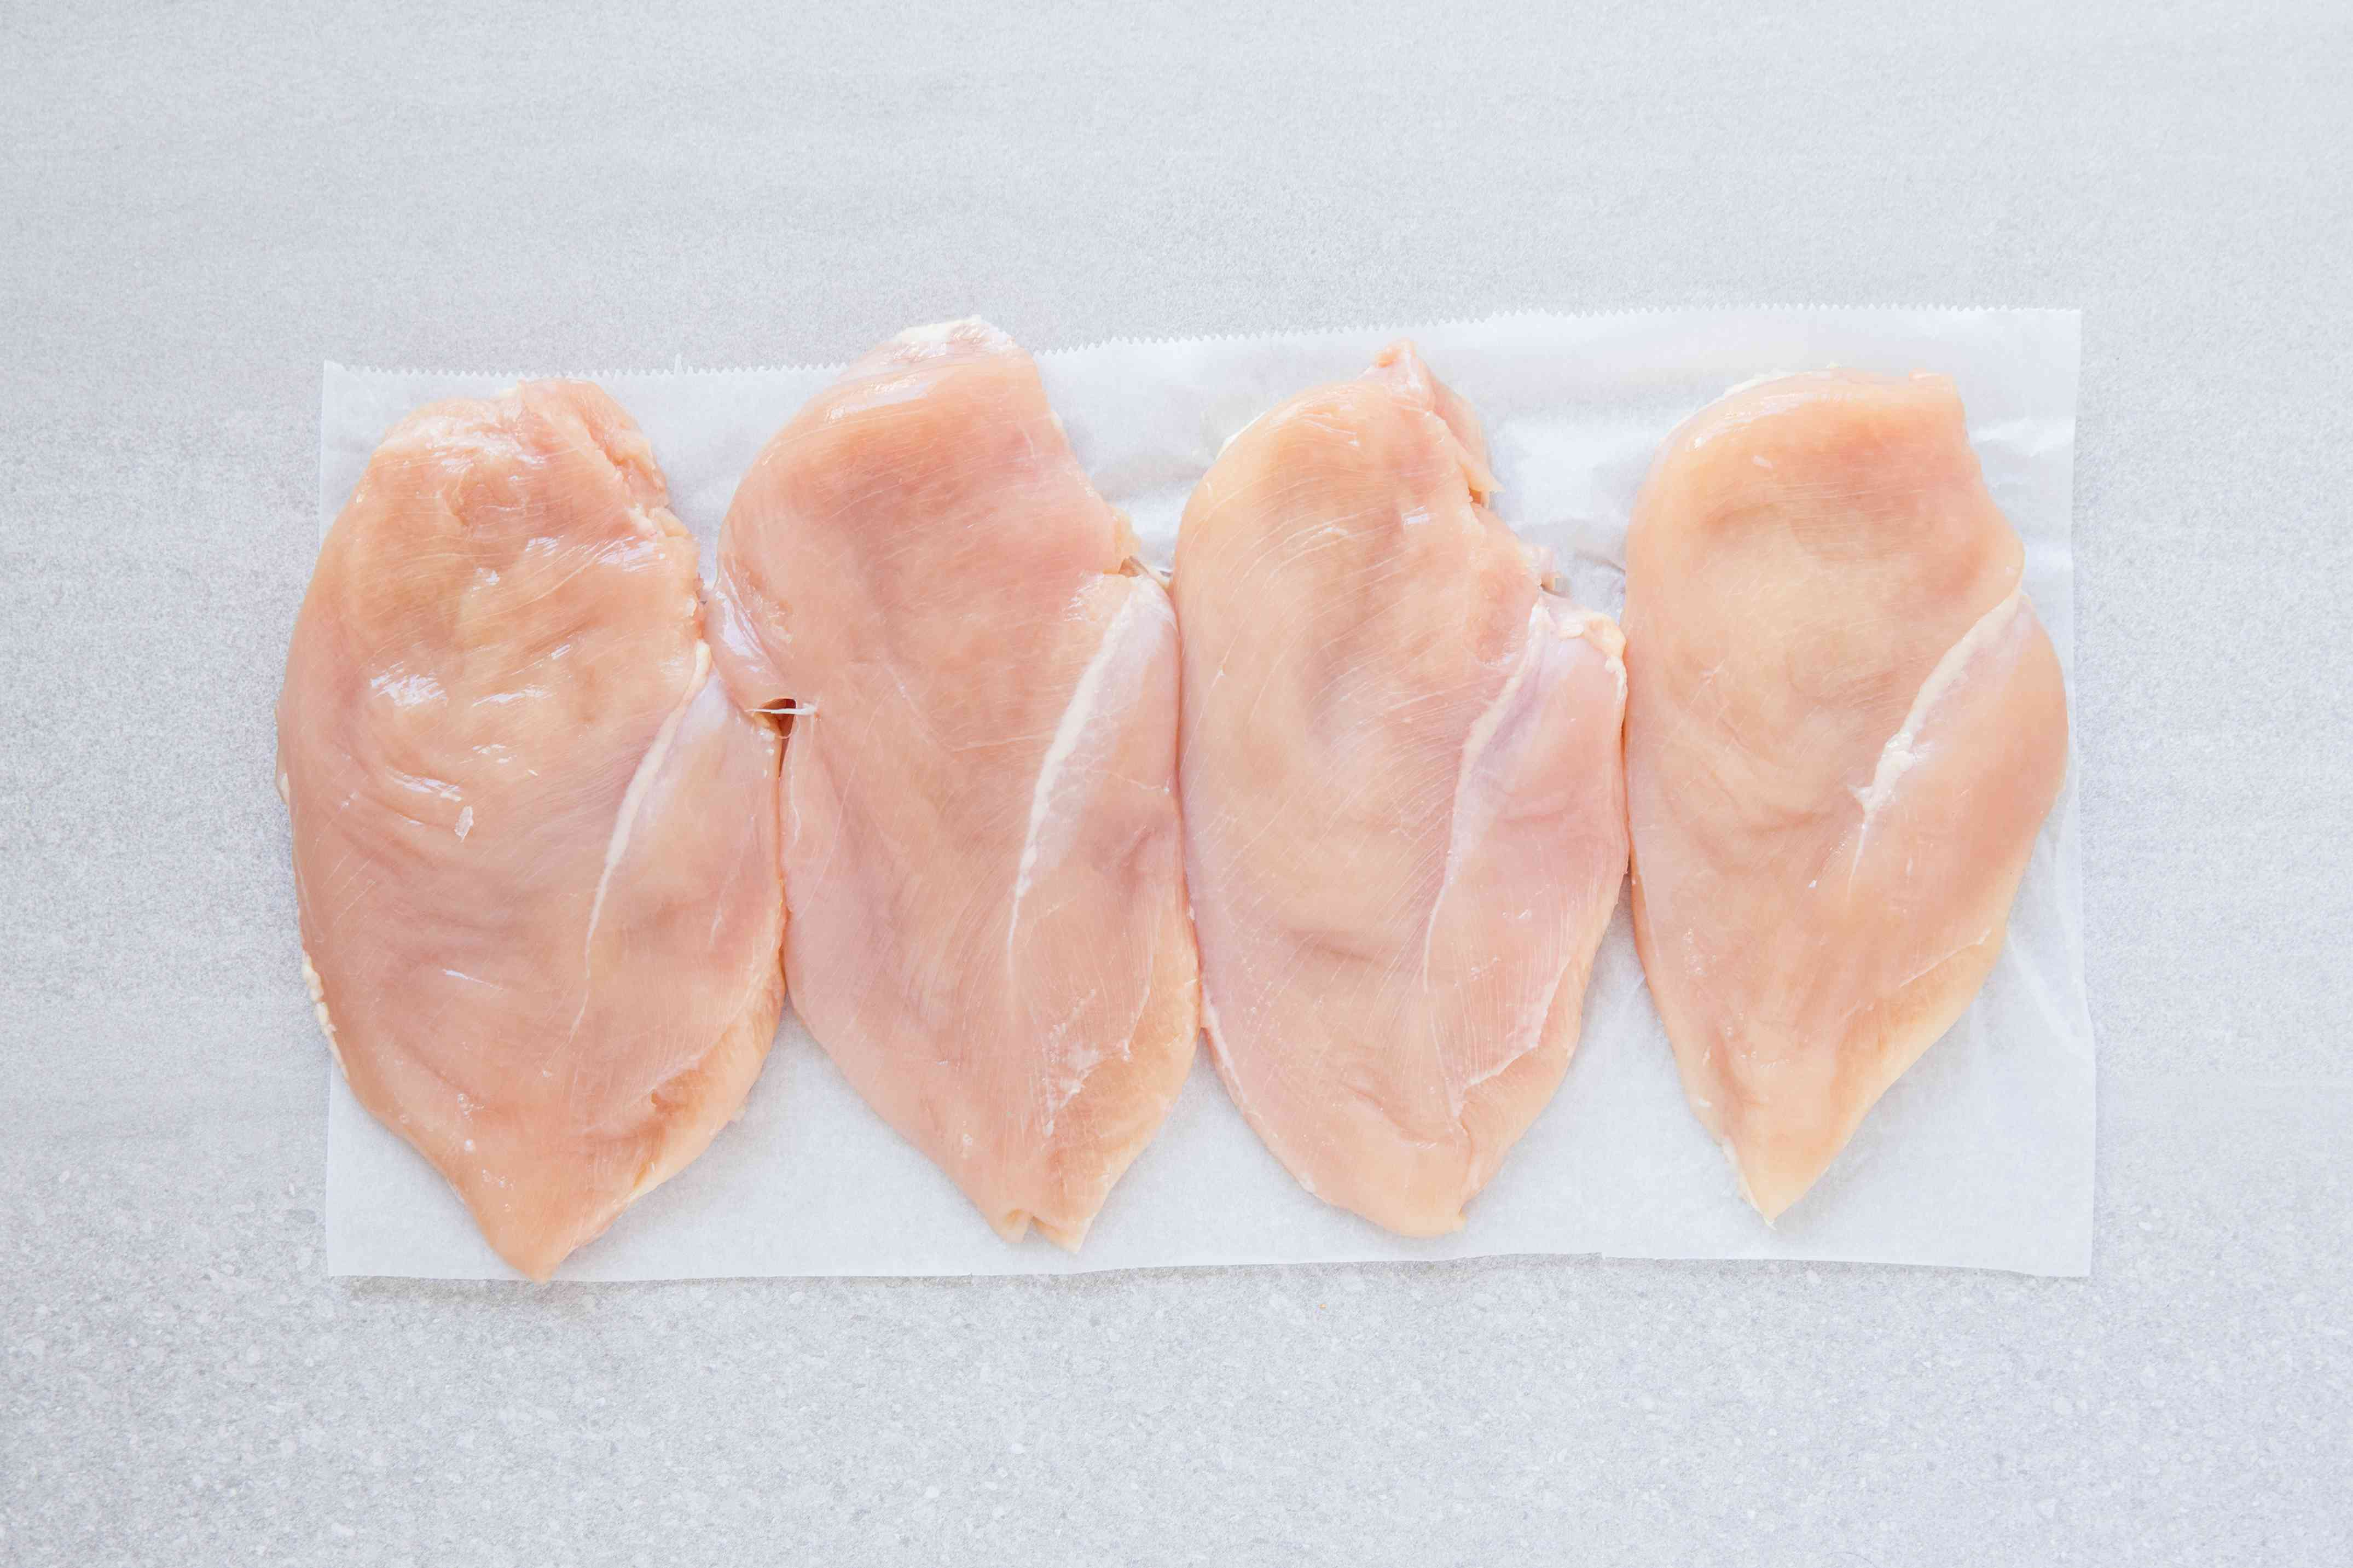 Chicken breasts on waxed paper